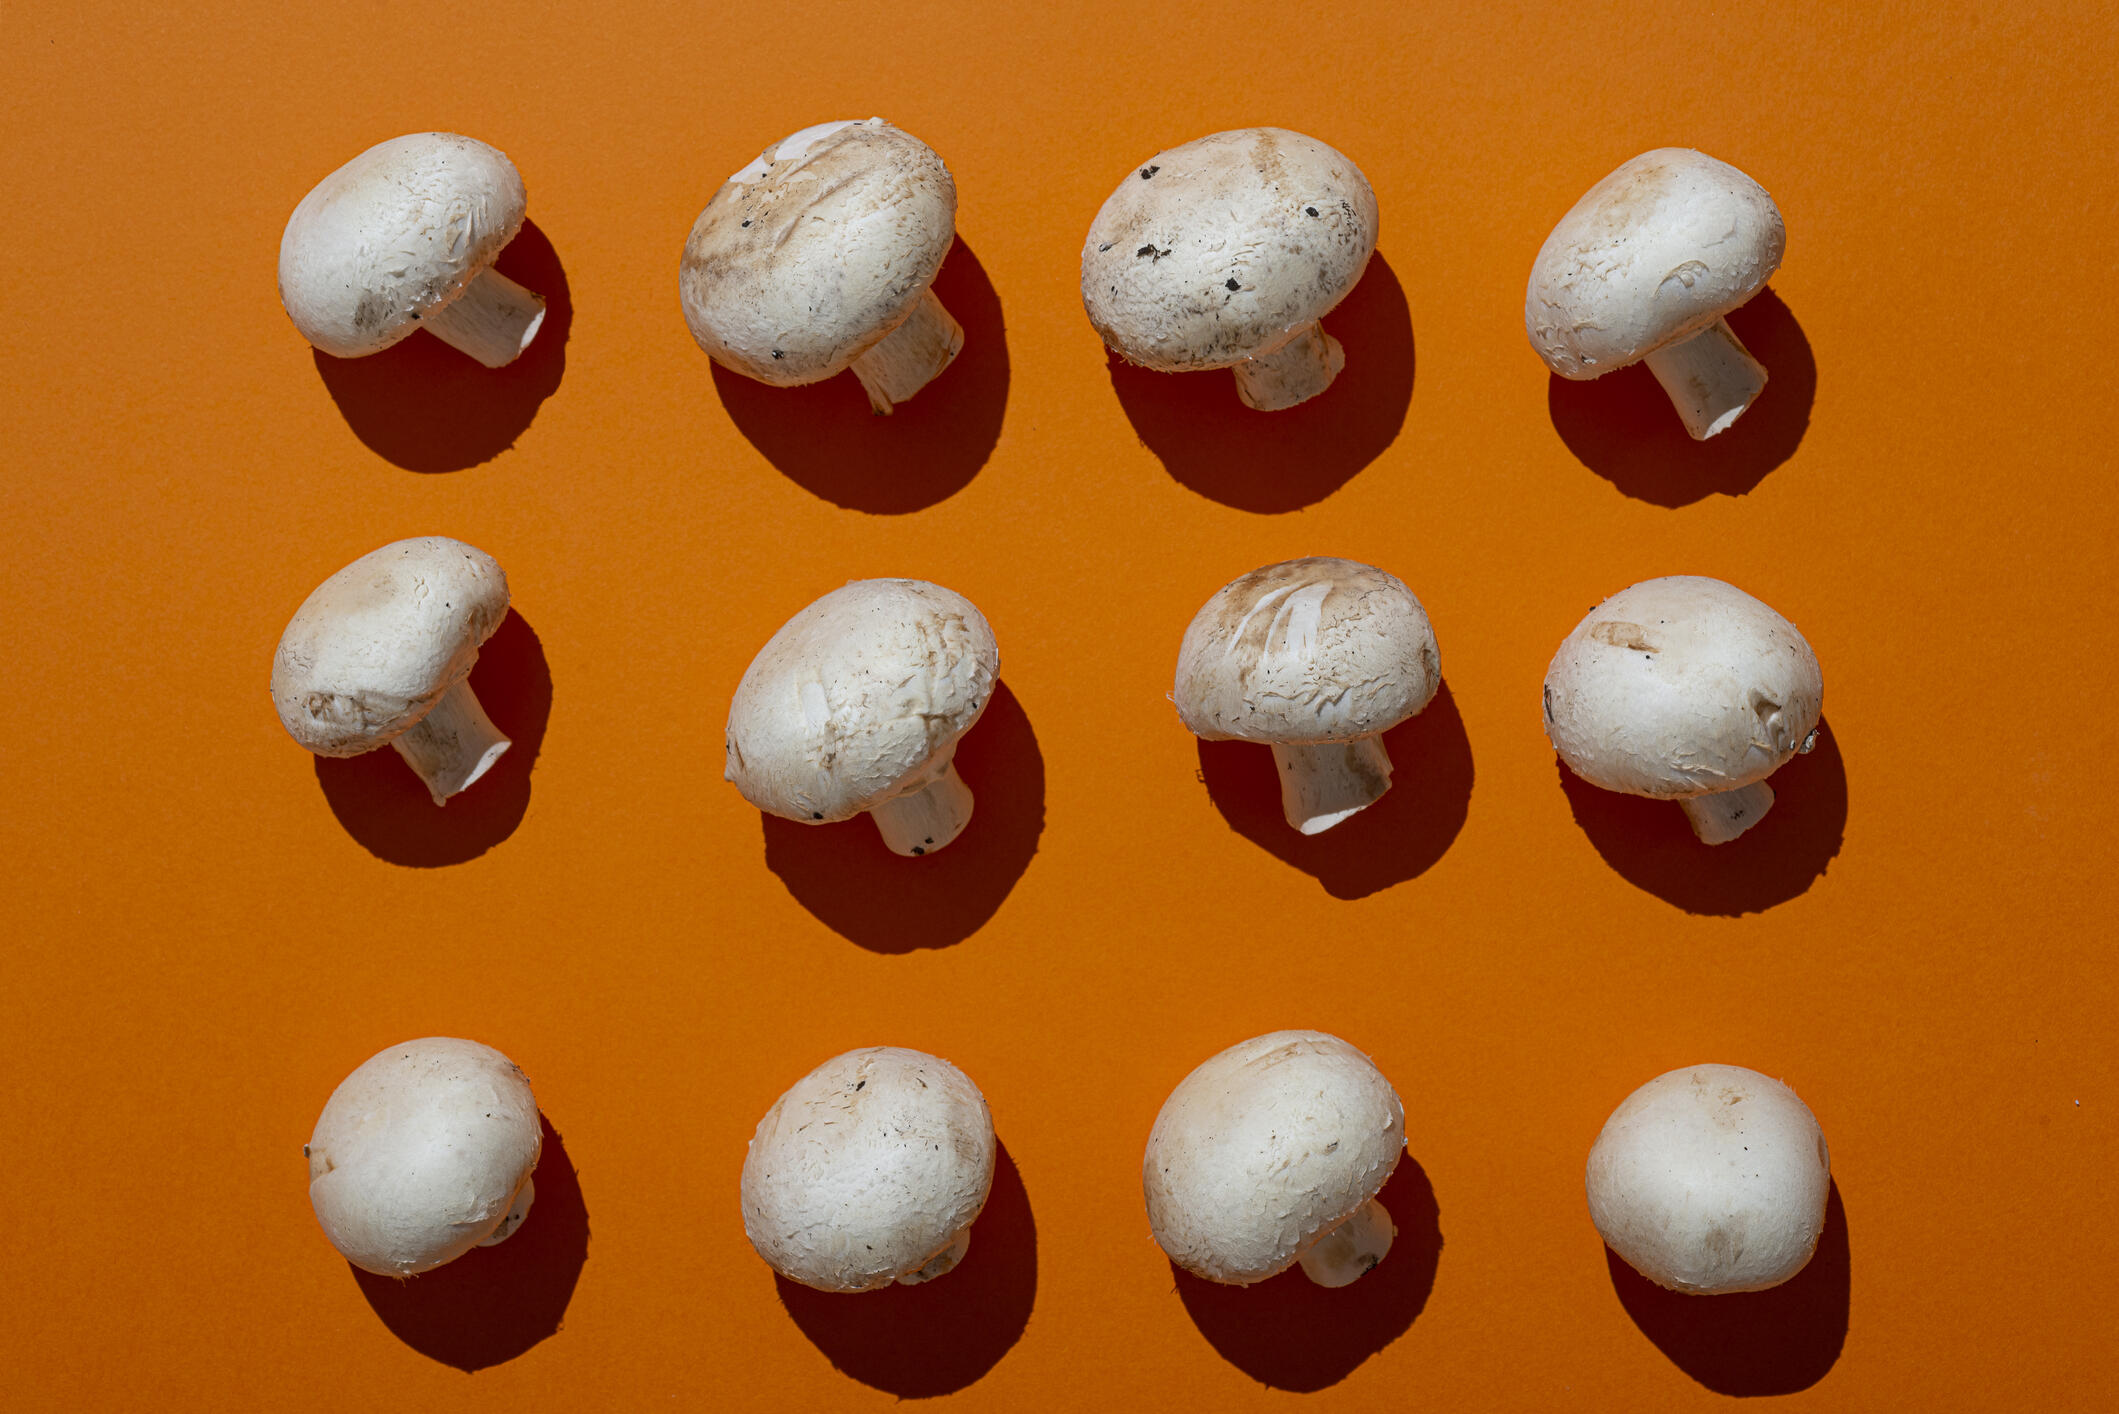 mushrooms on an orange background